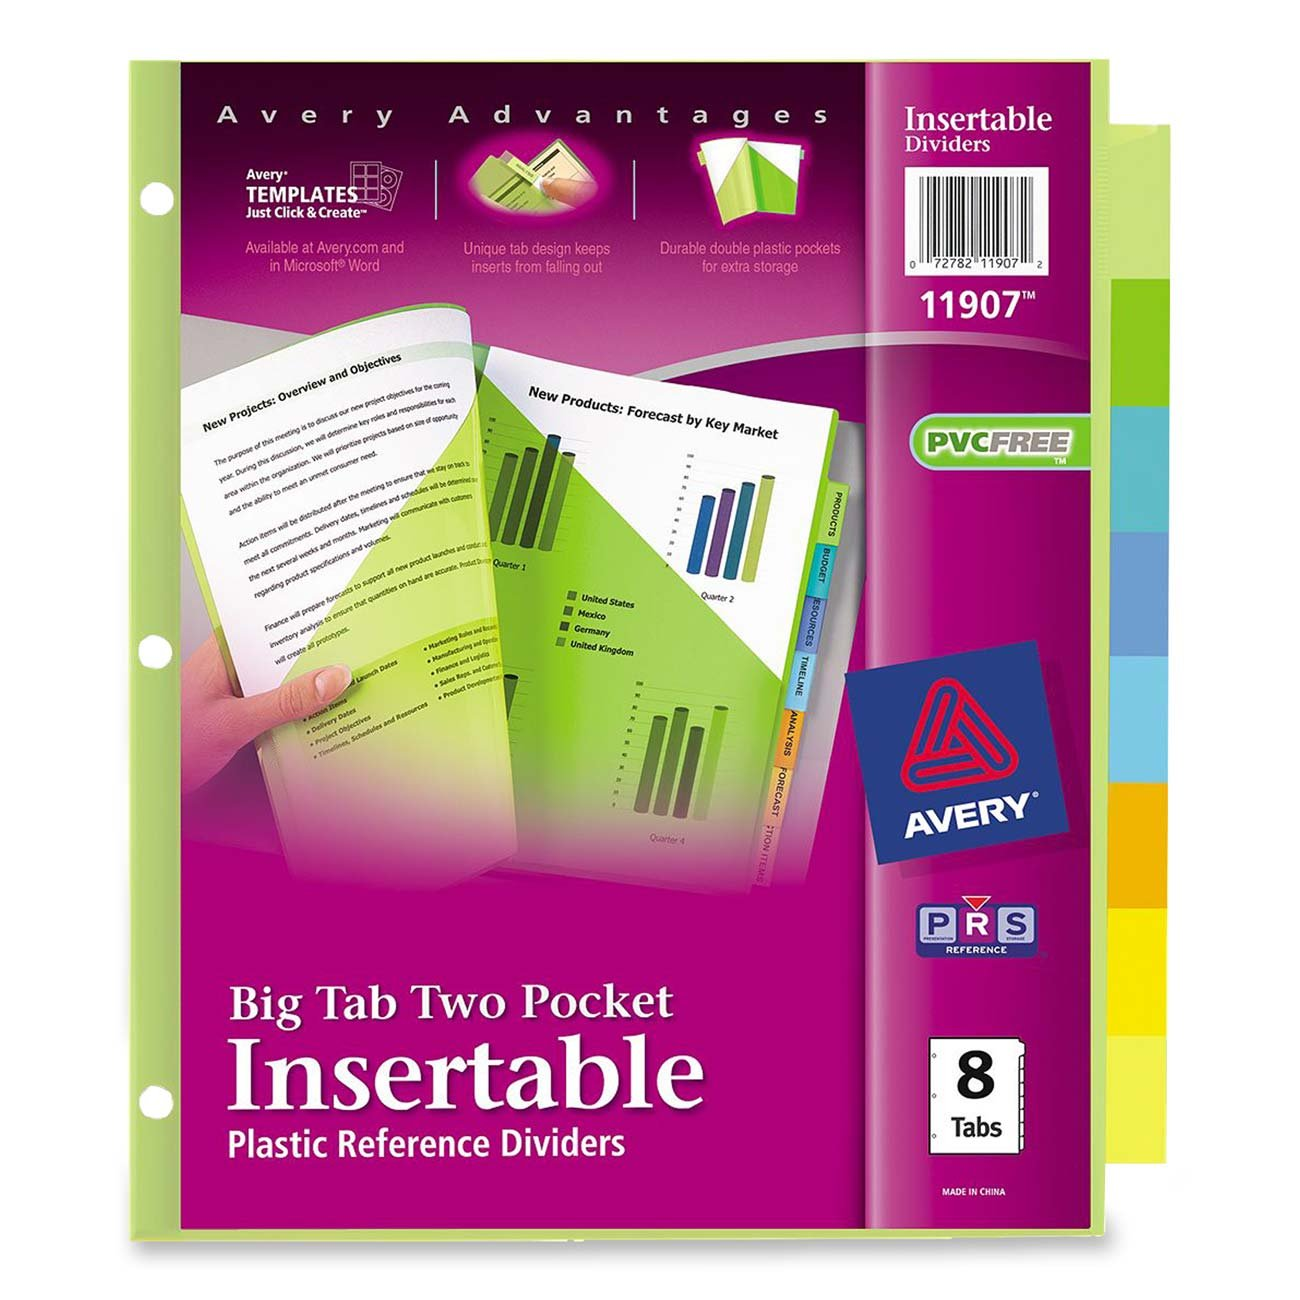 avery big tab inserts for dividers 8 tab template - we accept all major credit cards amazon payments and